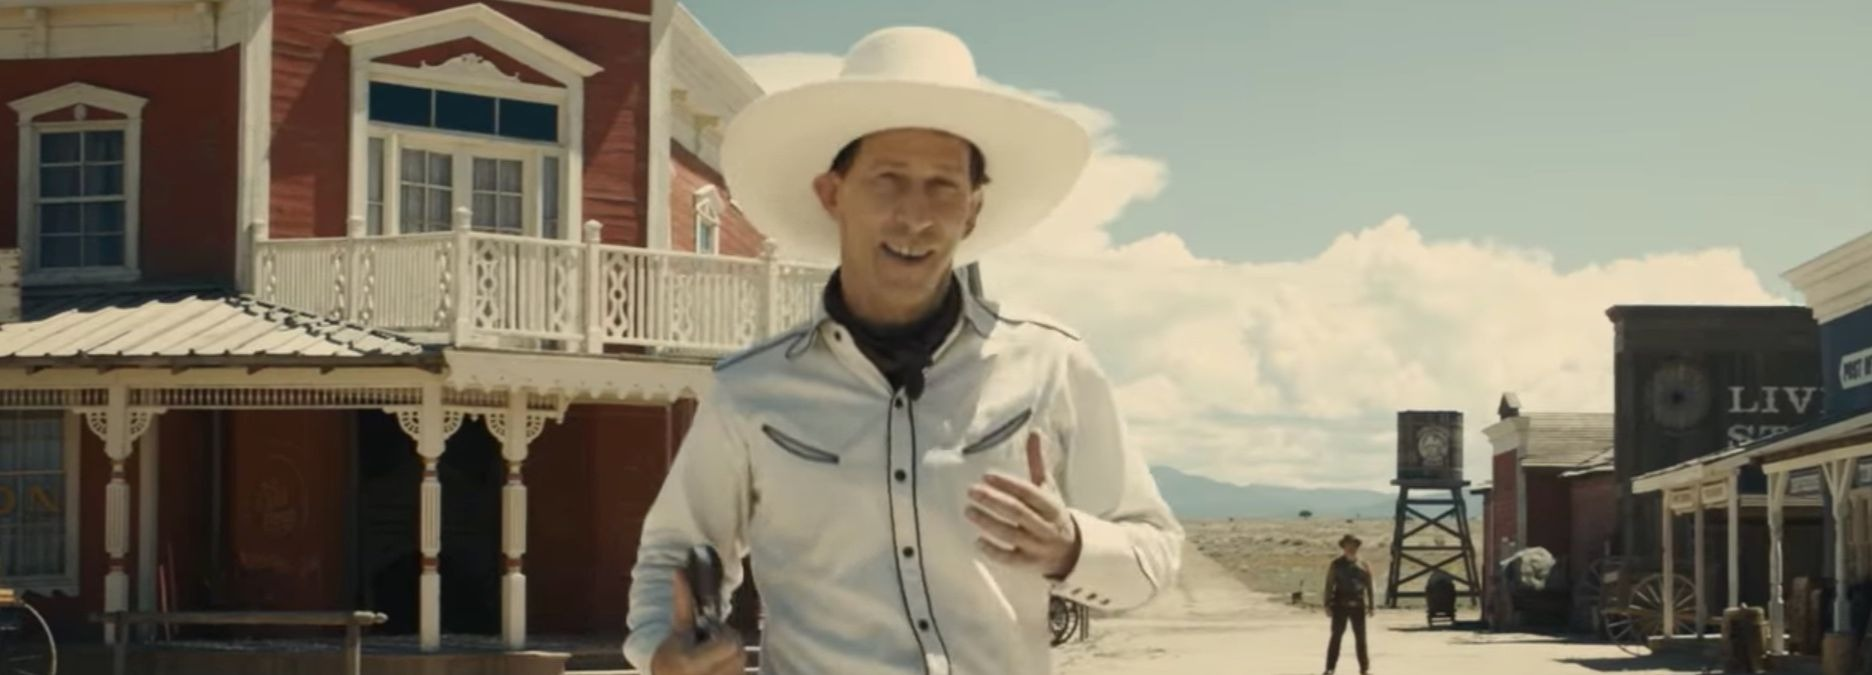 Image Result For The Ballad Of Buster Scruggs